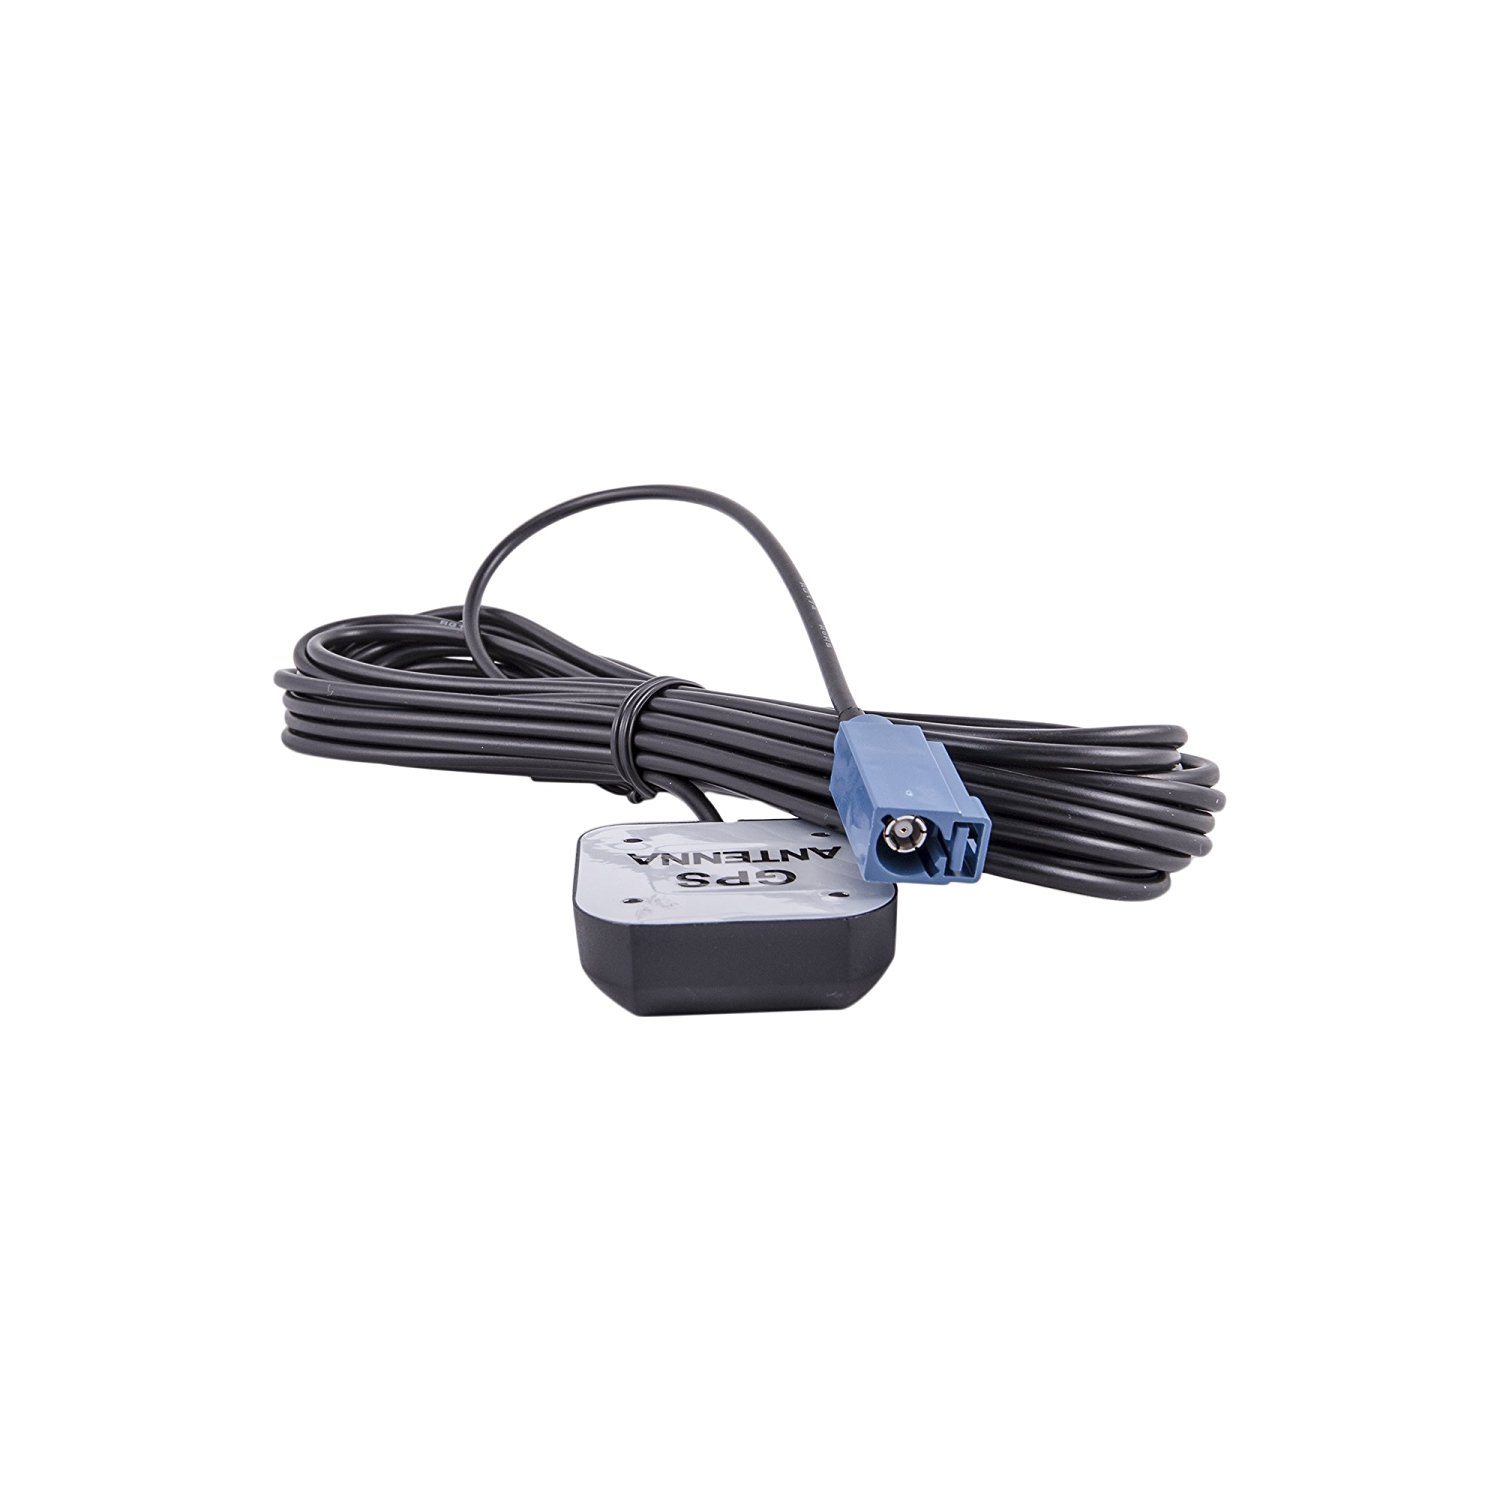 Cheap Clarion Nx501 Parts, find Clarion Nx501 Parts deals on line at